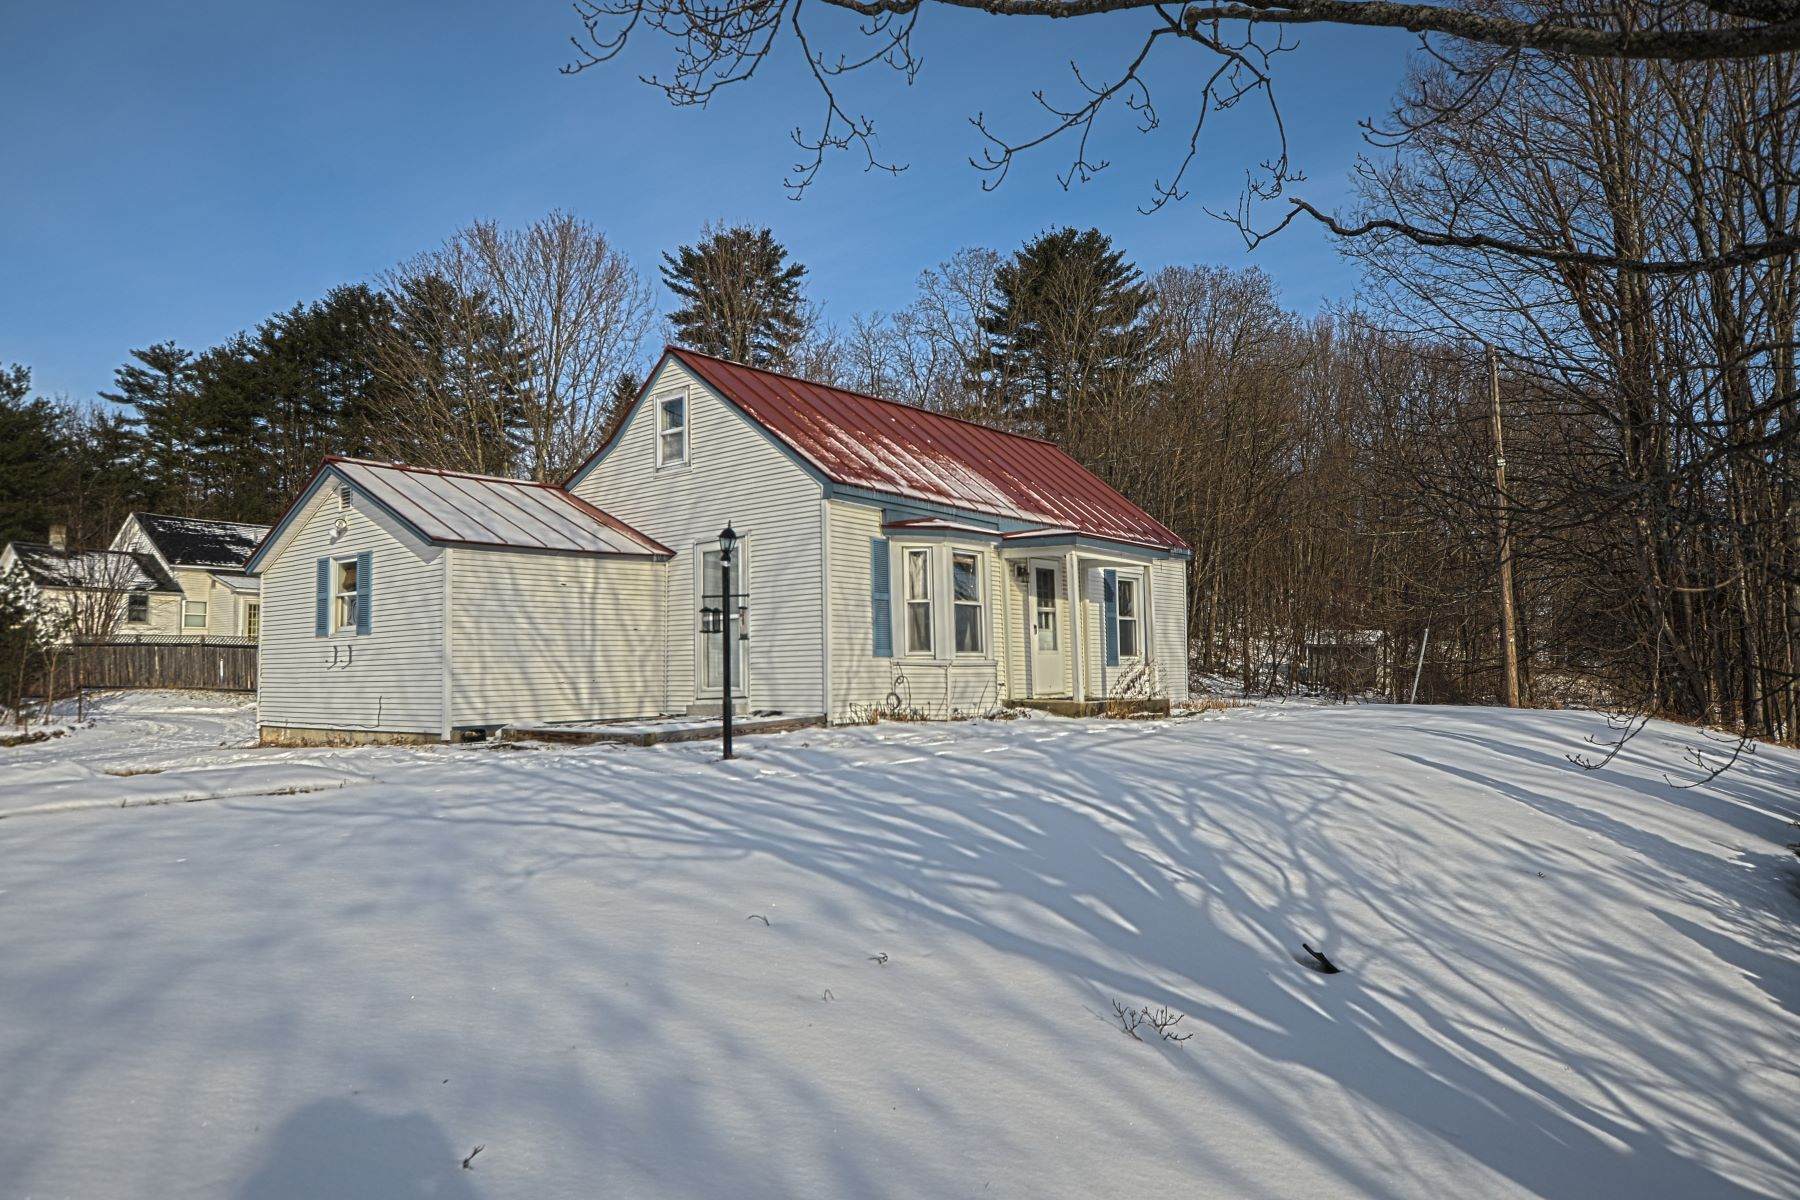 Single Family Home for Sale at Two or Three bedroom Cape in Bradford 395 High St Bradford, Vermont 05033 United States